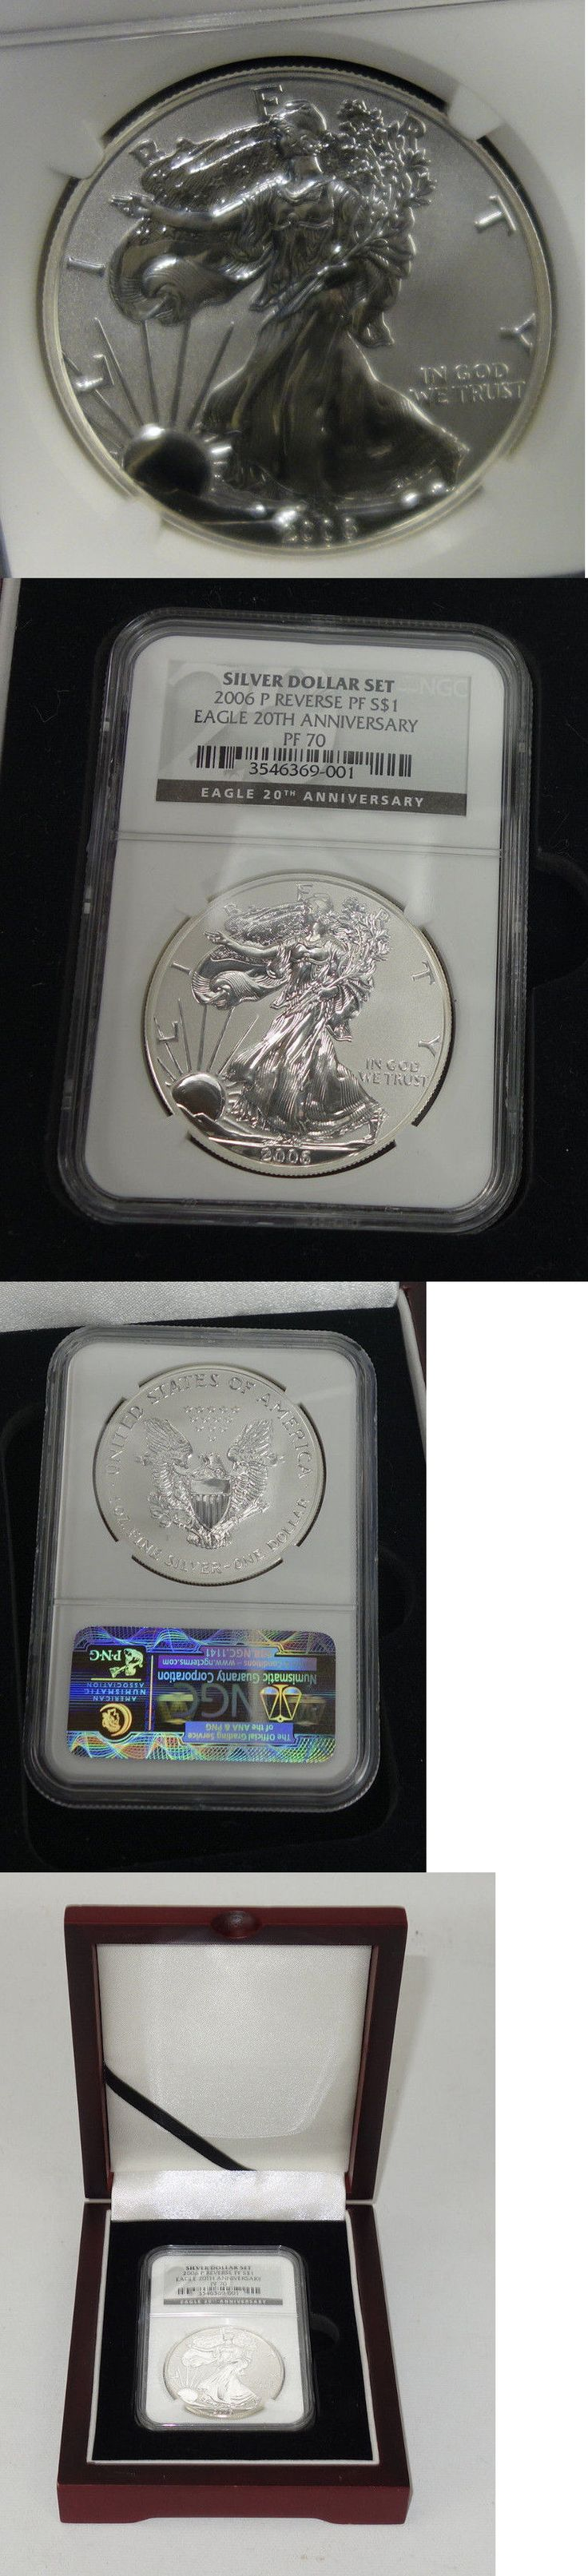 Bullion: 2006 Preverse Proof Silver Eagle Dollar Pf 40 Ngc With Box -> BUY IT NOW ONLY: $325 on eBay!